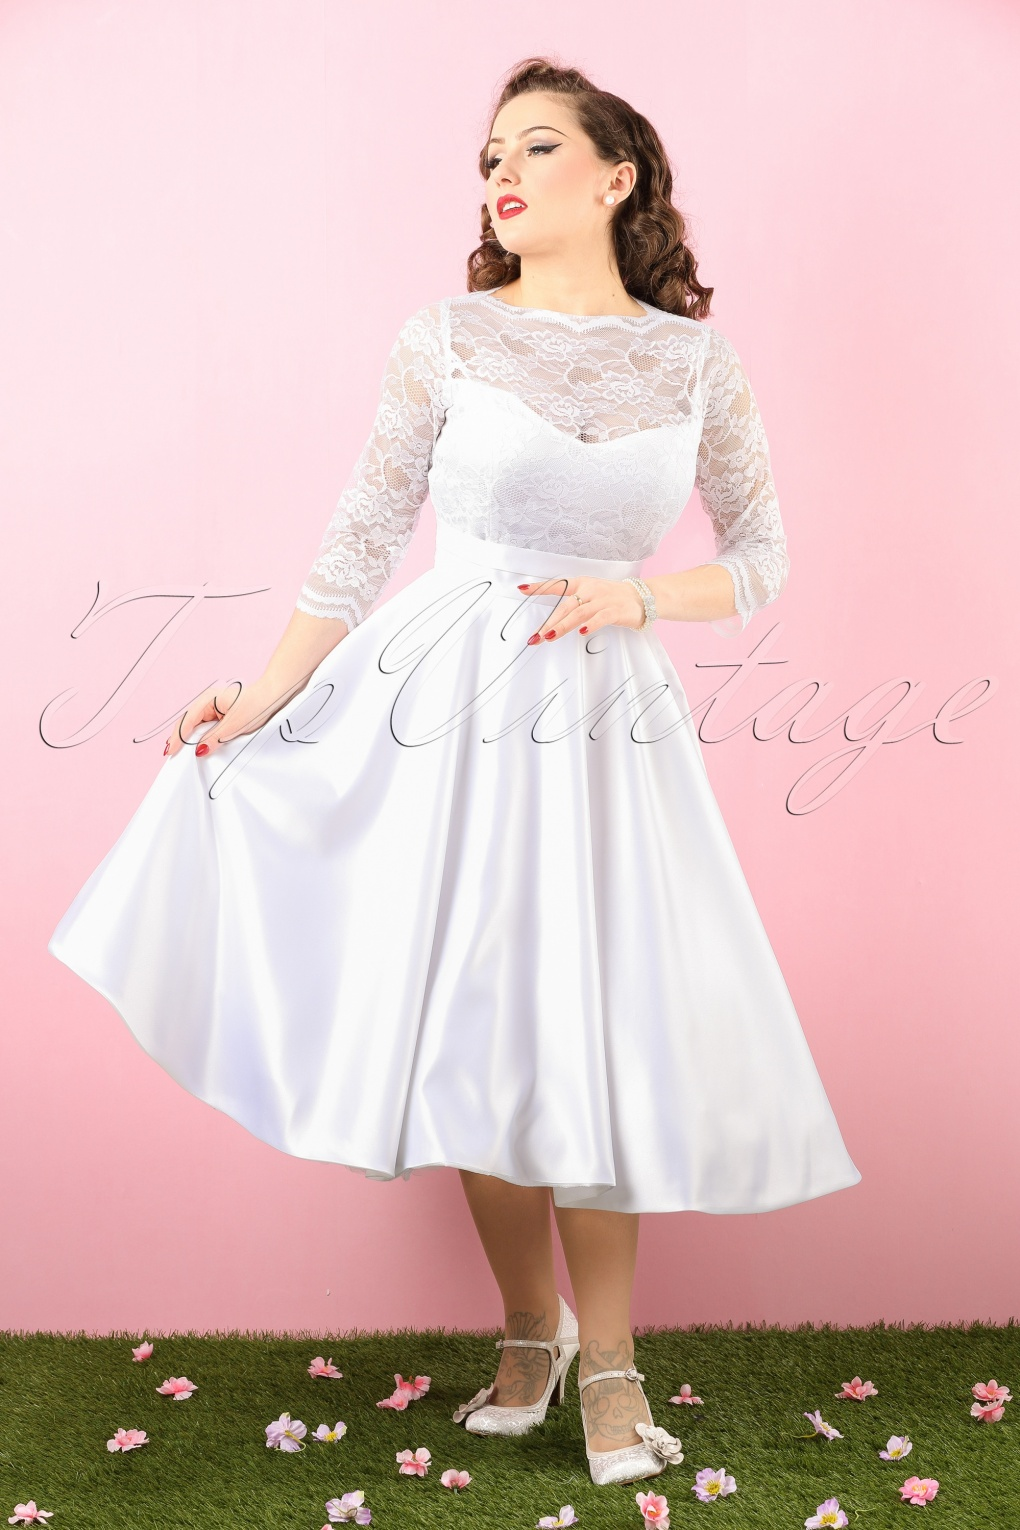 Vintage Inspired Wedding Dresses 50s Collette Lace Bridal Dress in White £195.41 AT vintagedancer.com